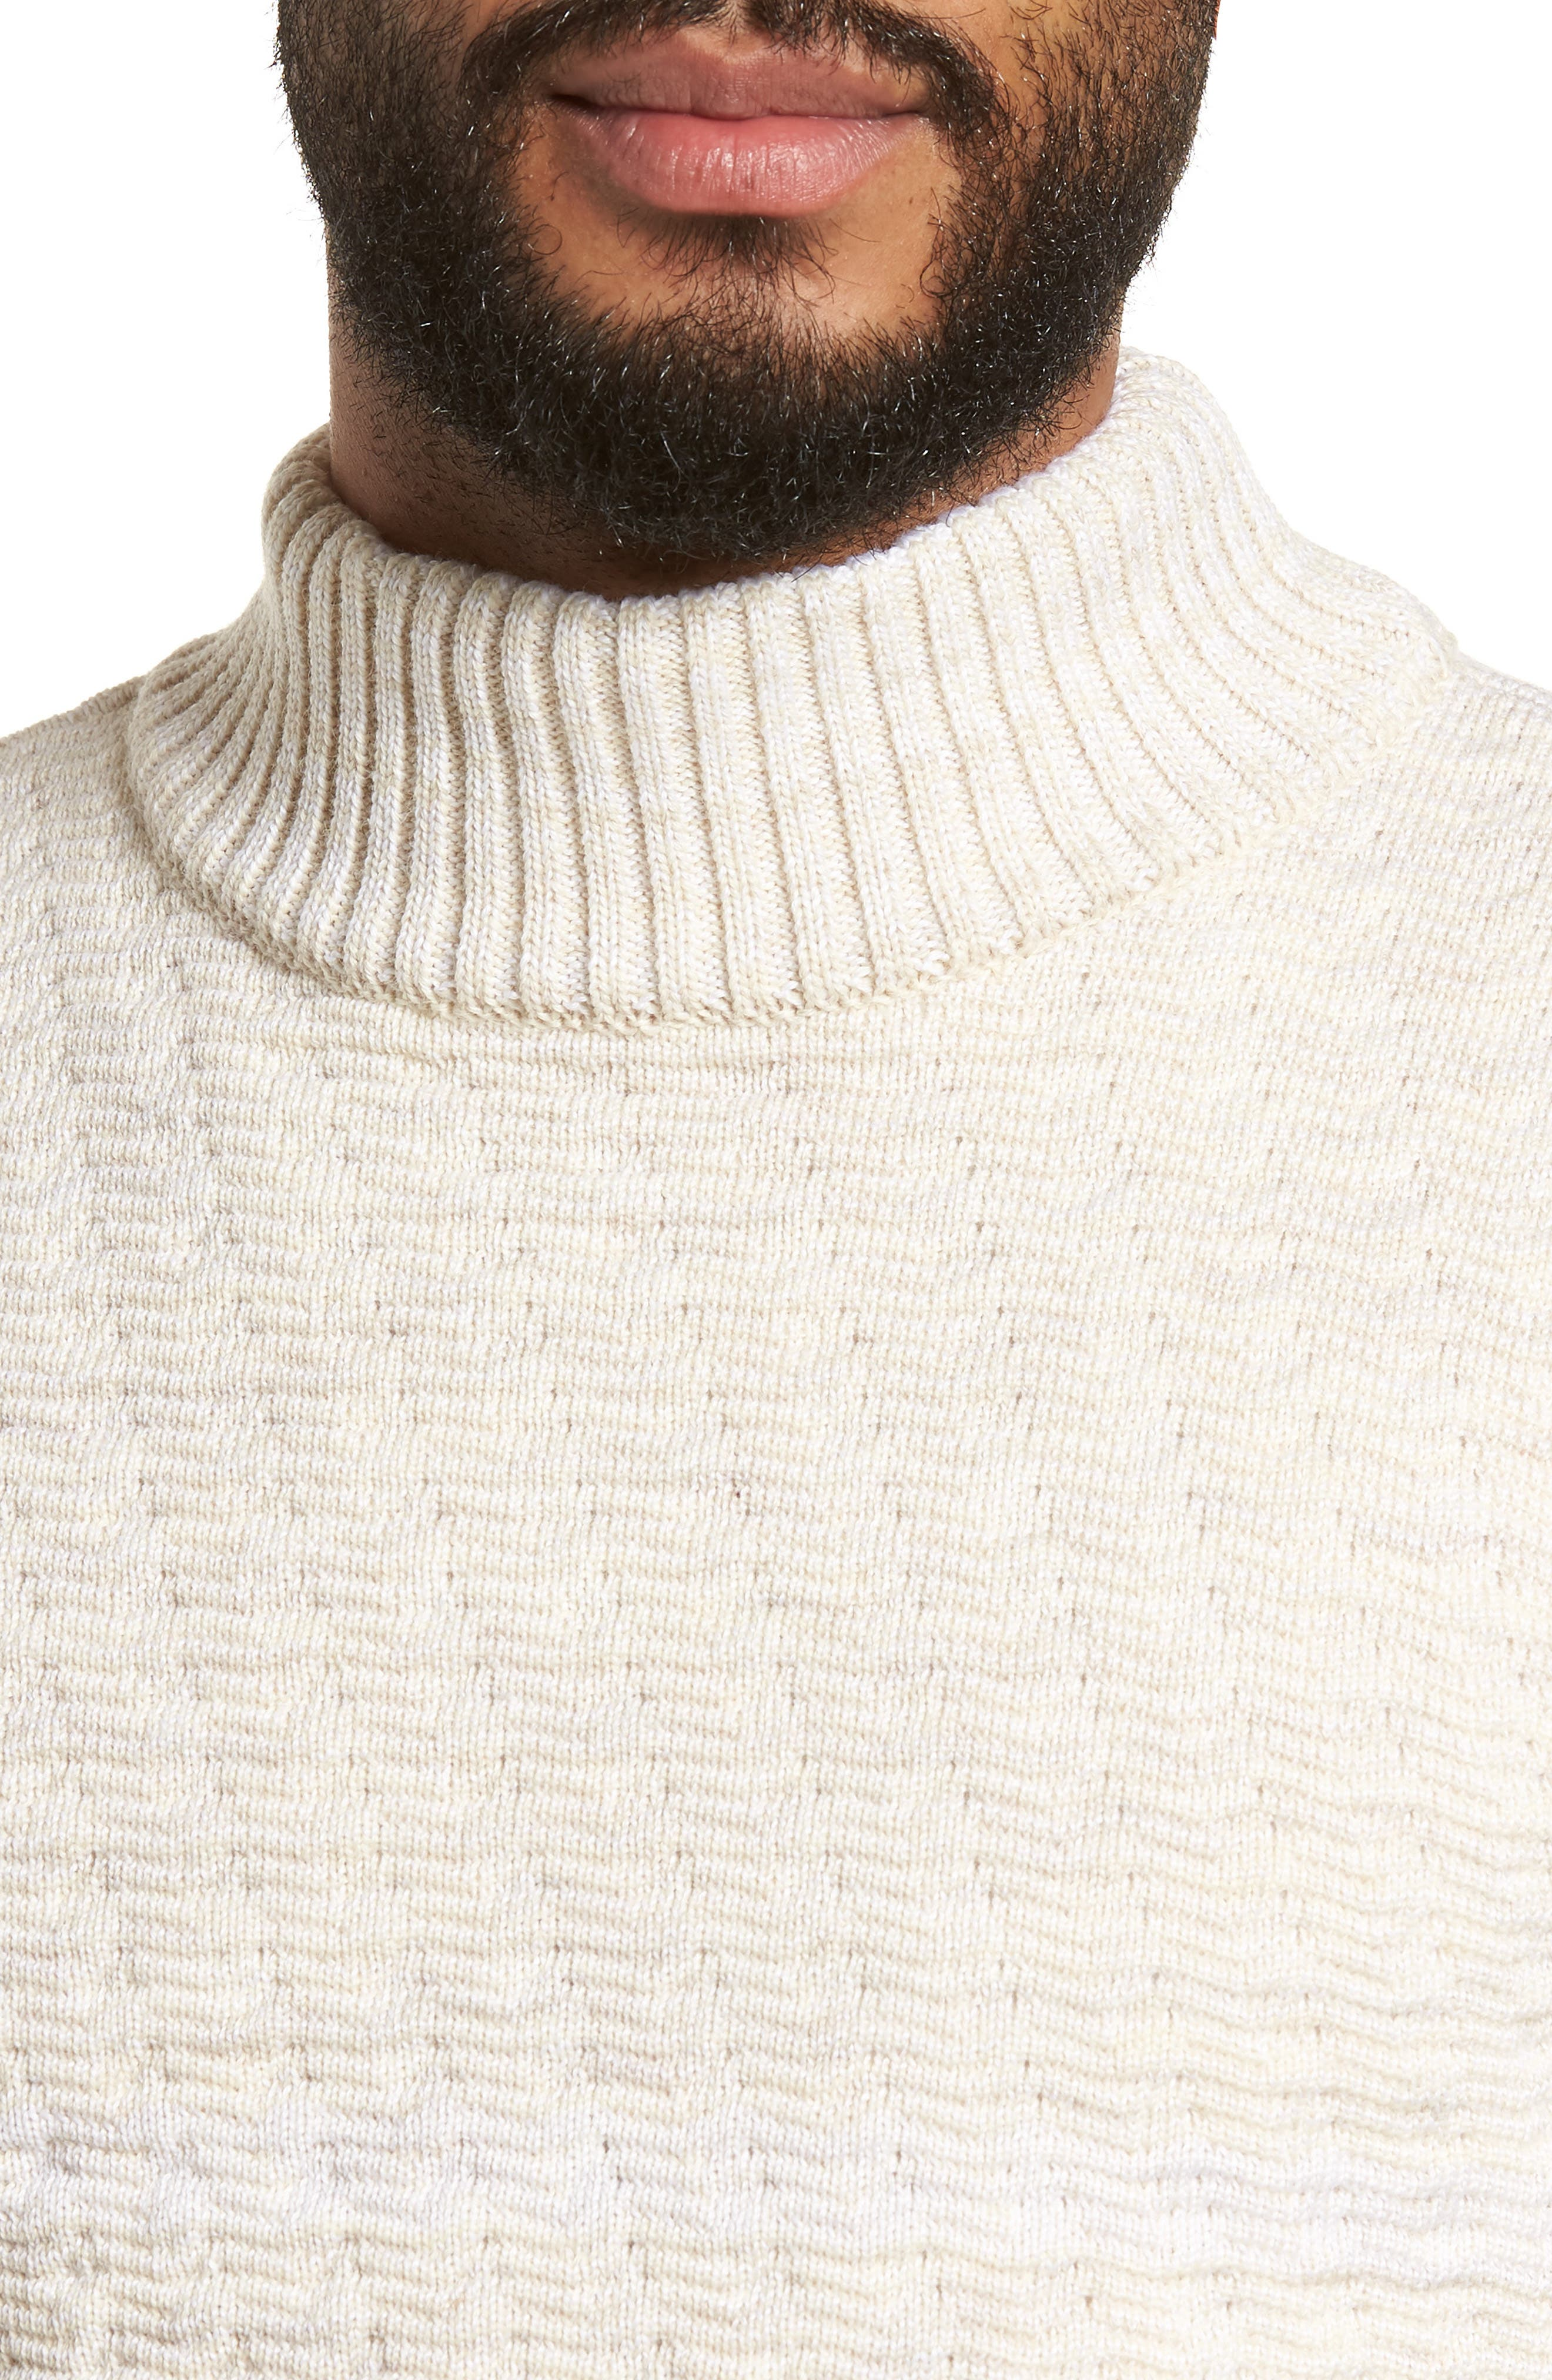 Evident Wool Turtleneck Sweater,                             Alternate thumbnail 4, color,                             Raw